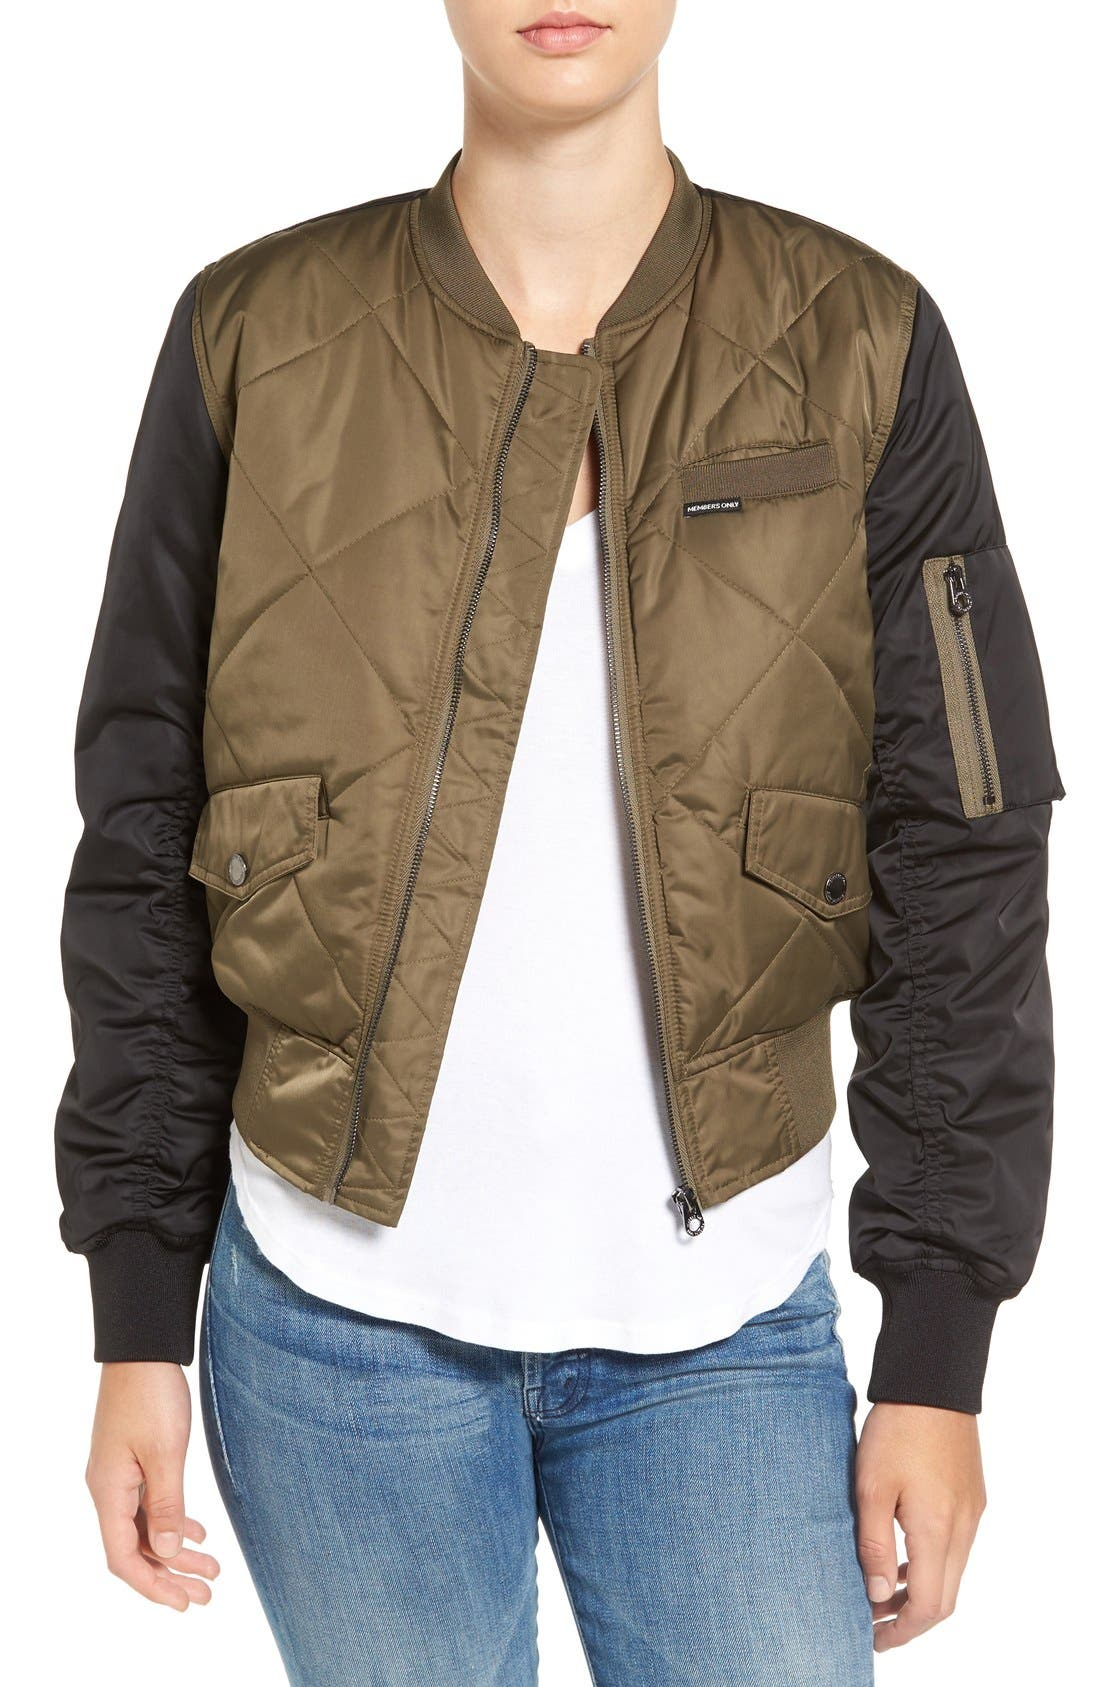 Alternate Image 1 Selected - Members Only Quilted Two-Tone Bomber Jacket